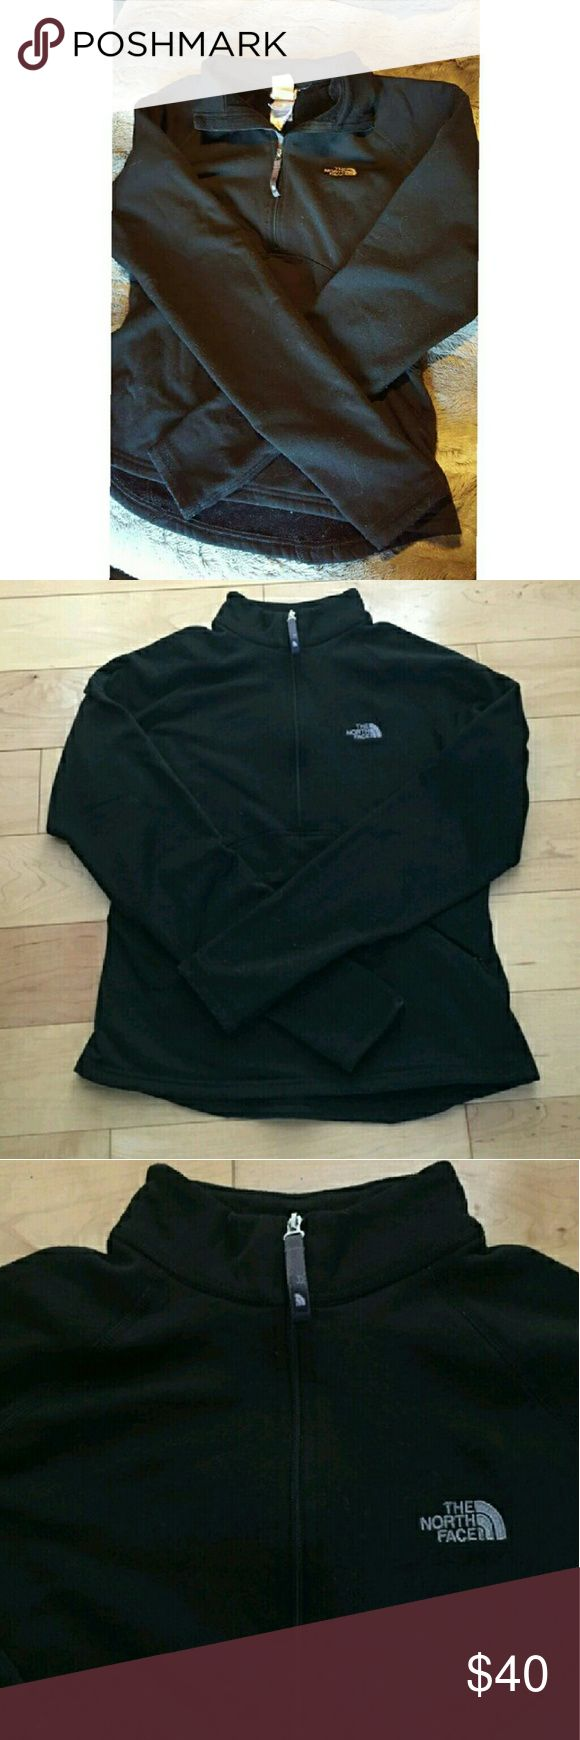 """The north face half zip Black """"the north face"""" half zip fleece lined jacket. Super cute! In great condition 💕 OPEN TO OFFERS AND BUNDLE DISCOUNTS 😊 The North Face Jackets & Coats"""